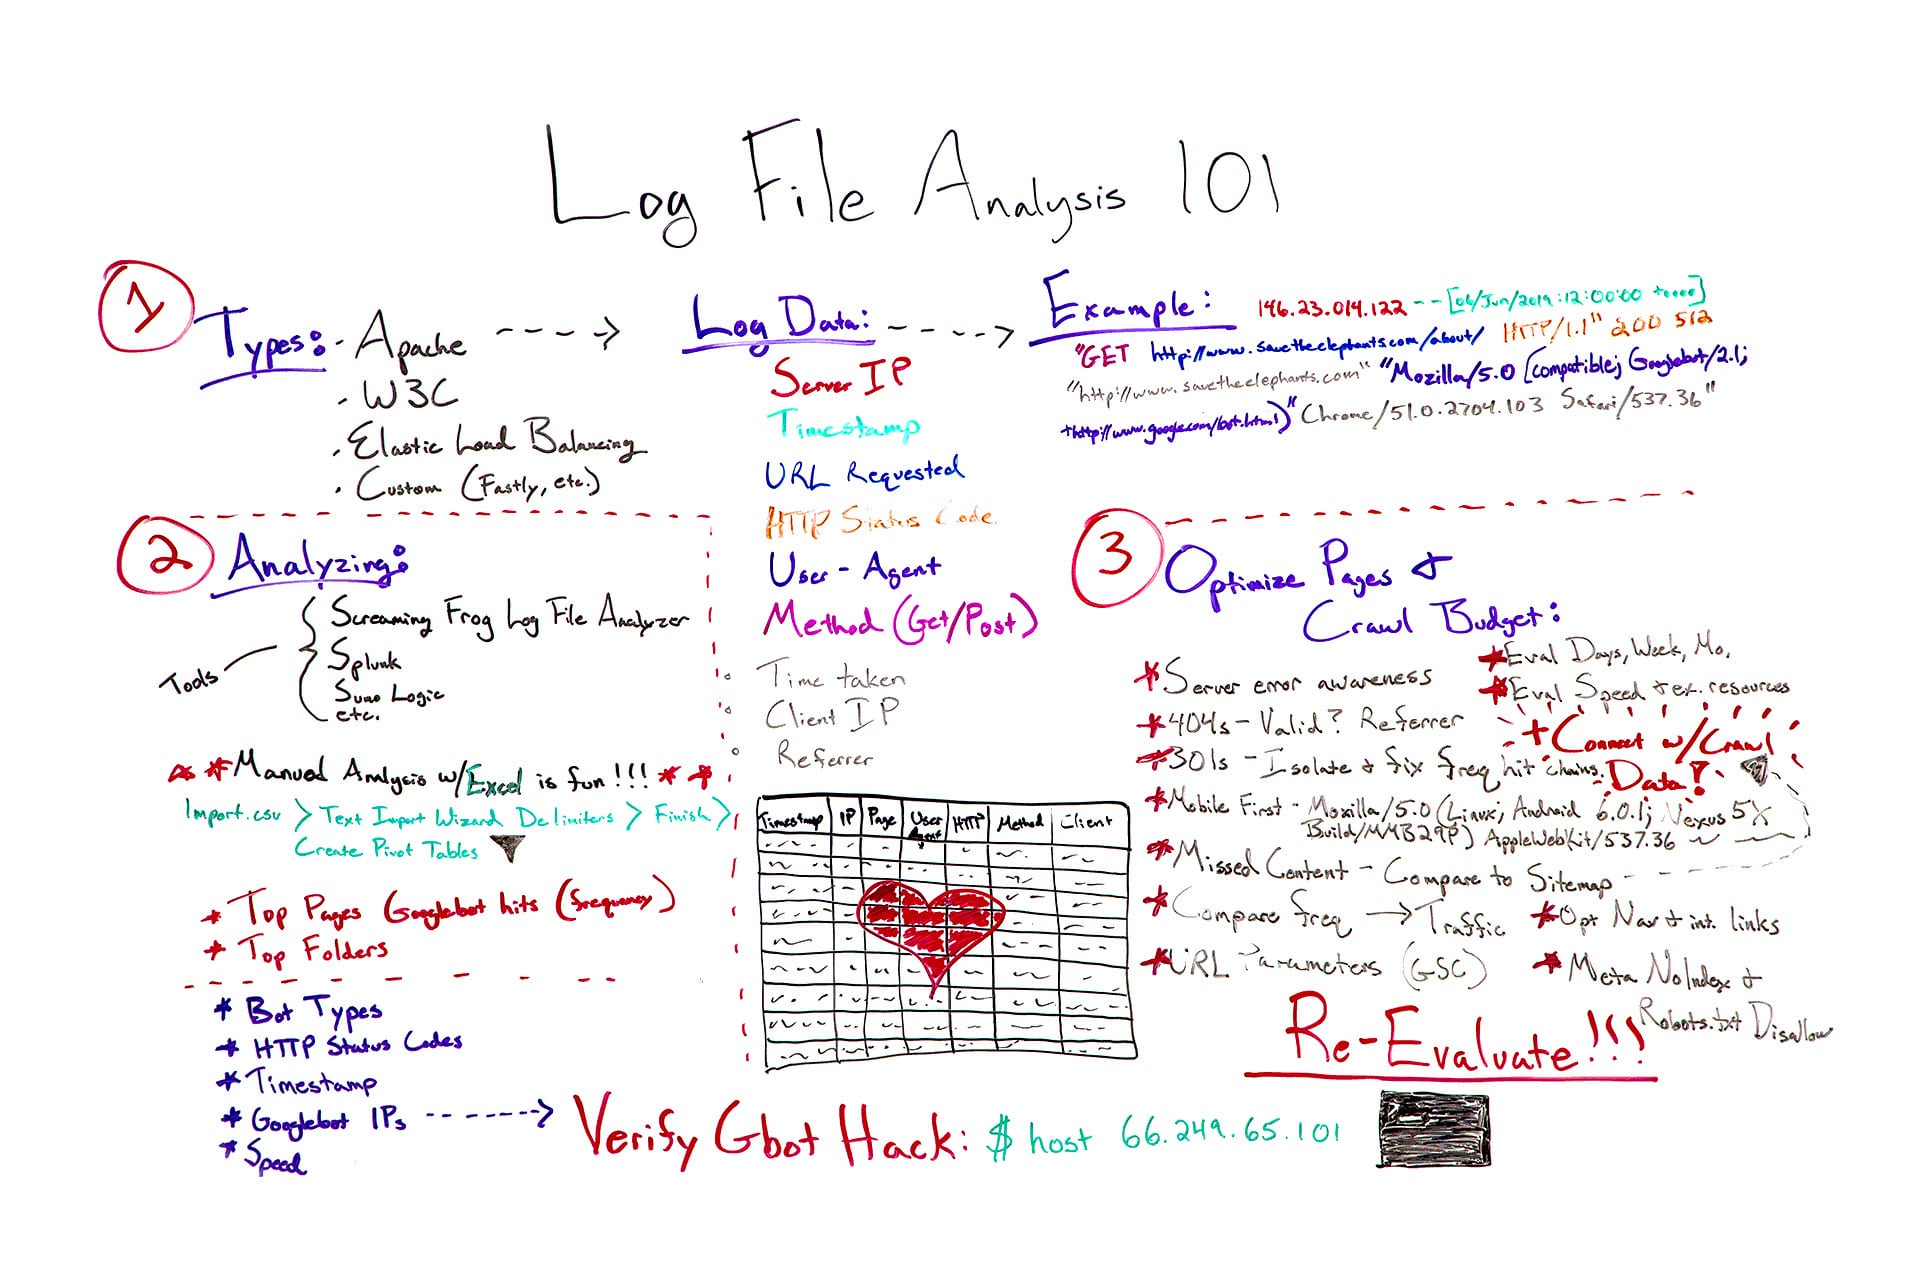 Analisi file log - Log file analysis